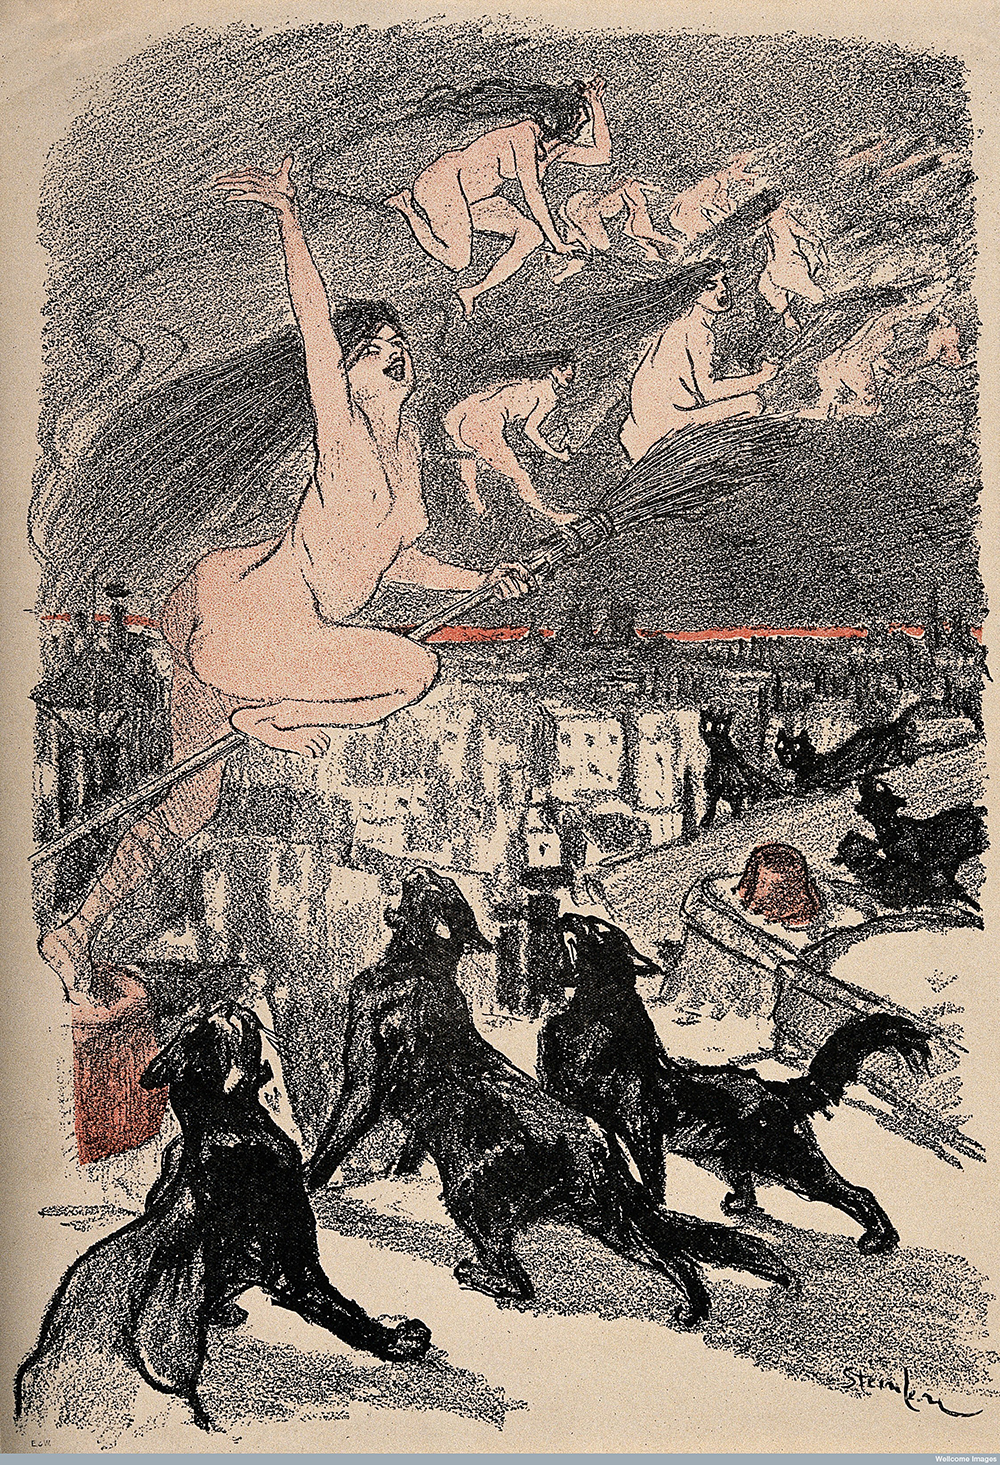 Big black cats howl as naked witches ascend into the night, by T.A. Steinlen.